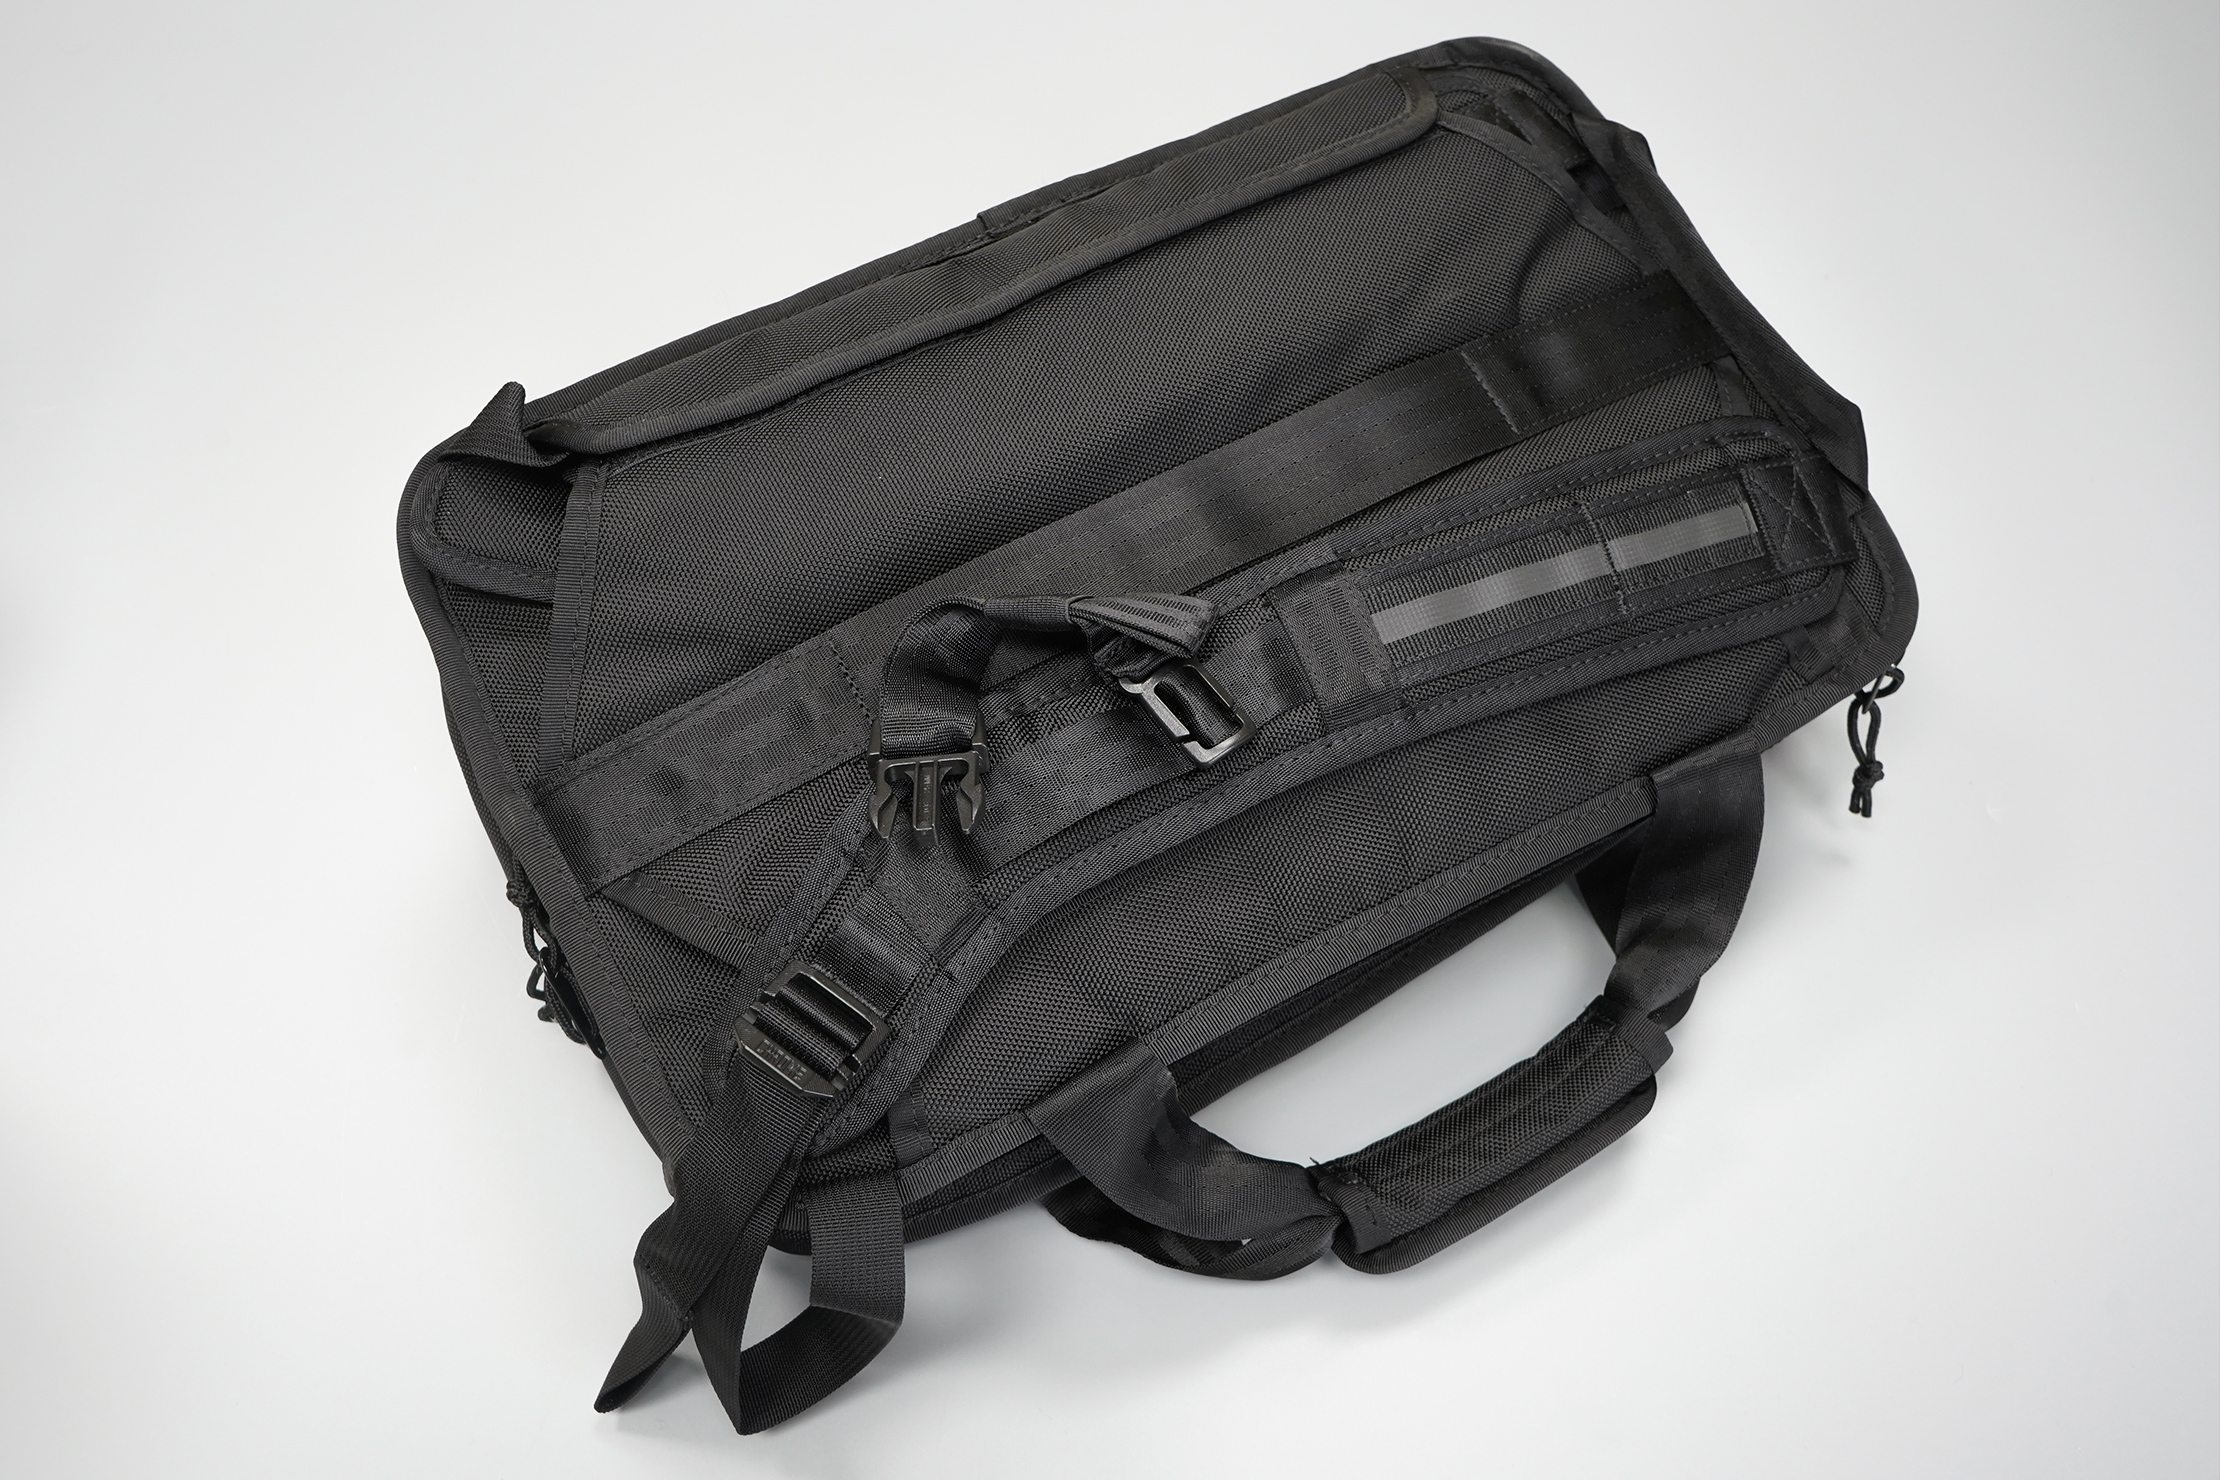 Chrome Industries Vega 2.0 Transit Brief   This harness system stows away completely out of sight when not in use